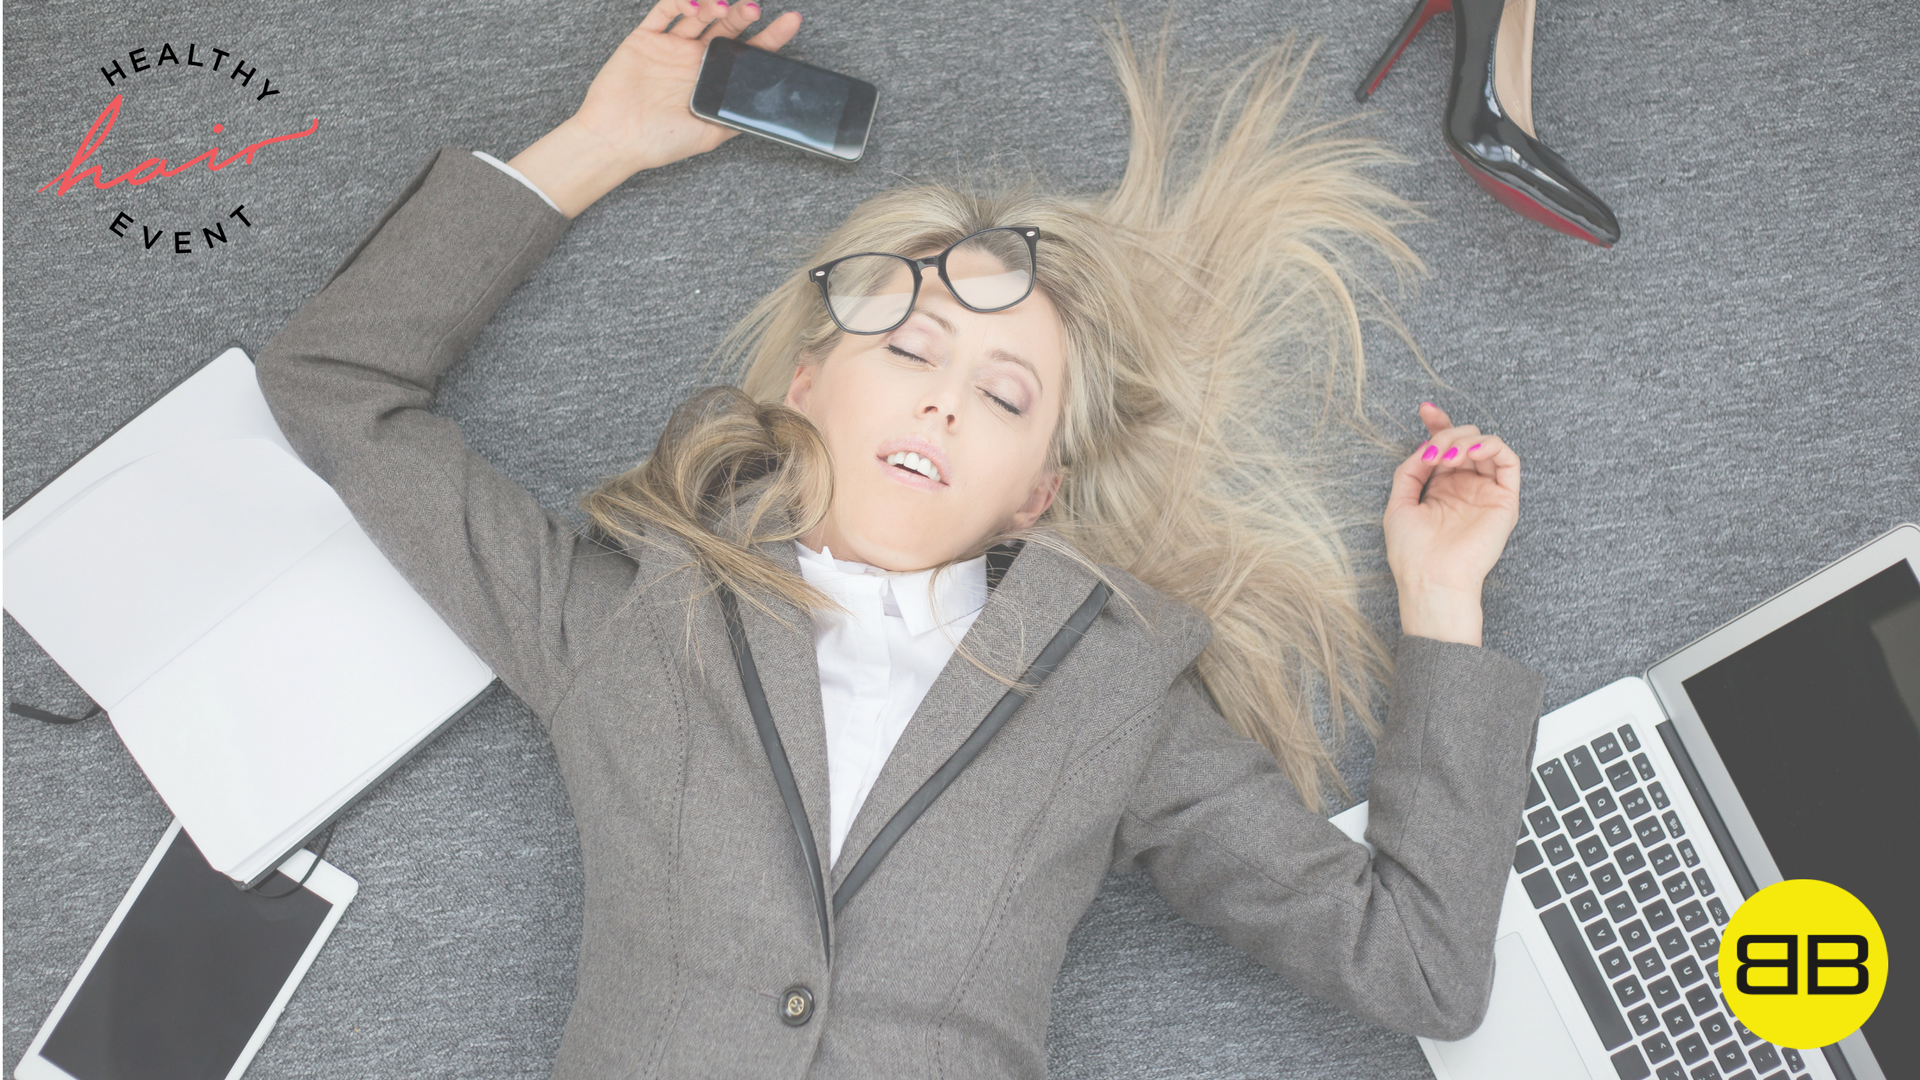 Top 3 Ways Stress Wrecks Your Hair | Image of stressful woman on the floor surrounded by digital devices